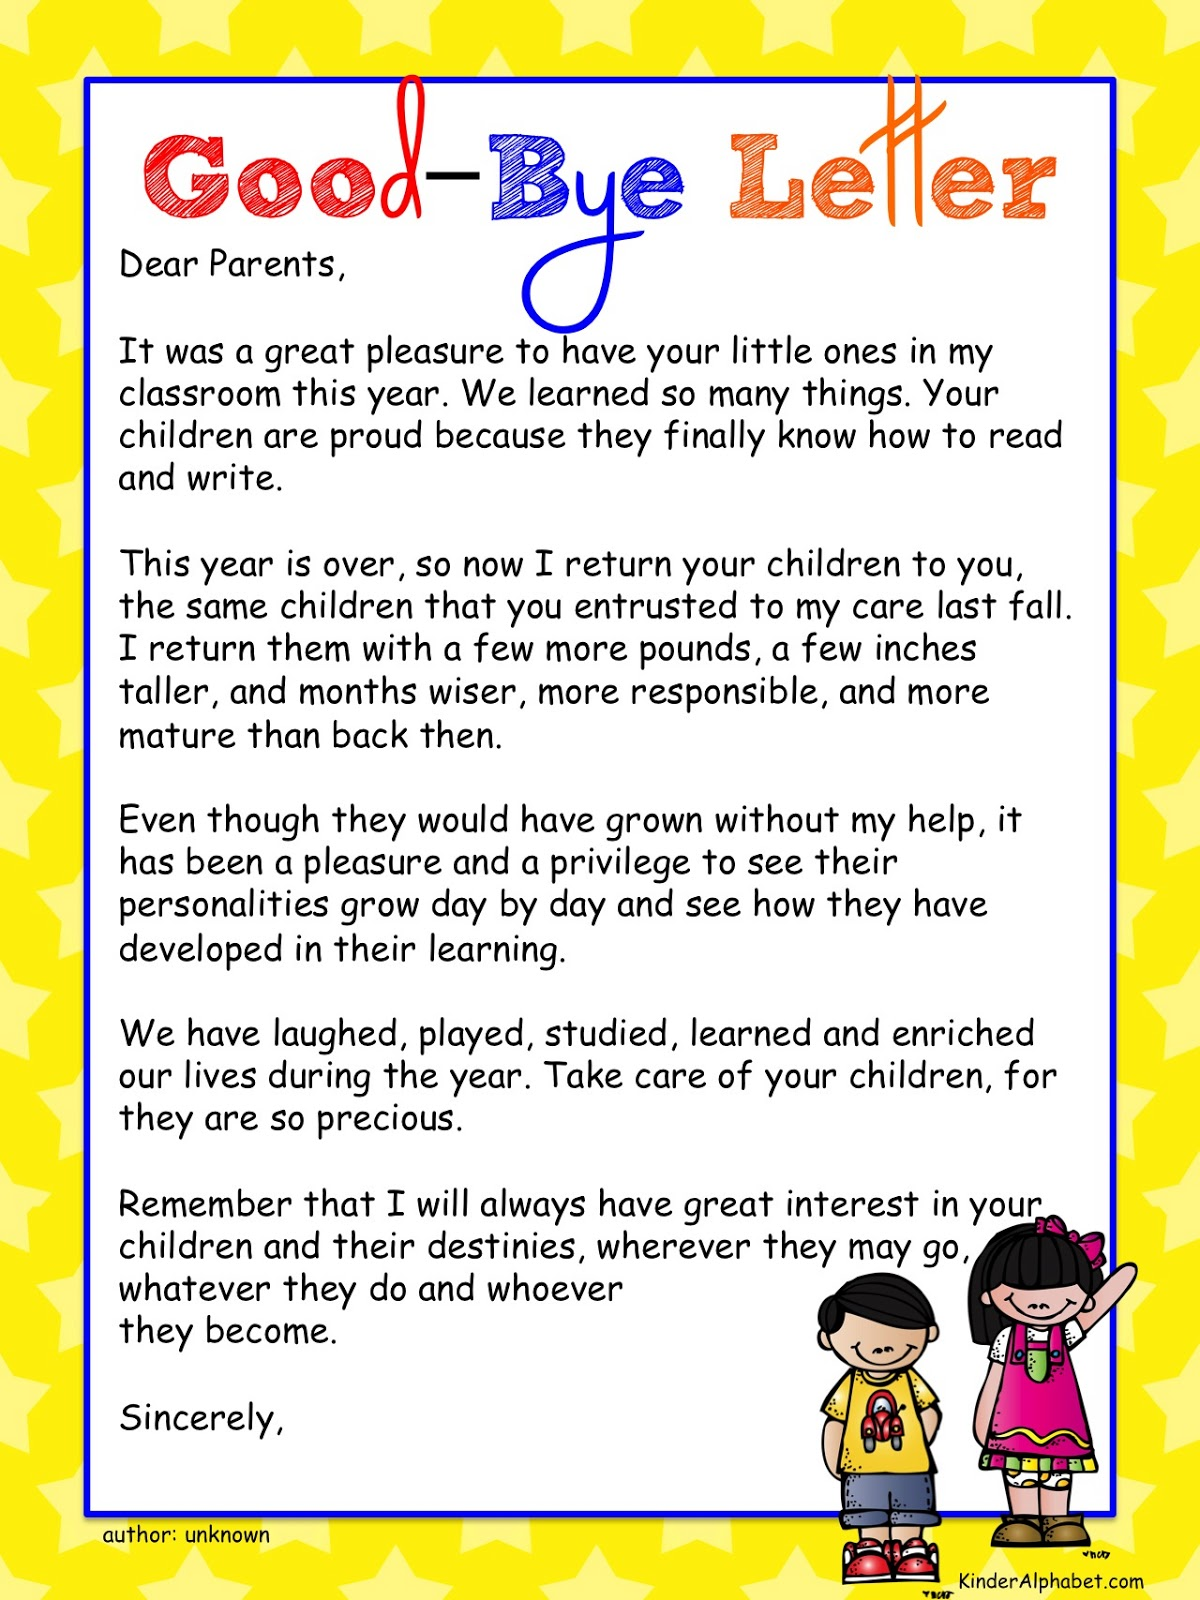 Student teacher writing a letter to parents